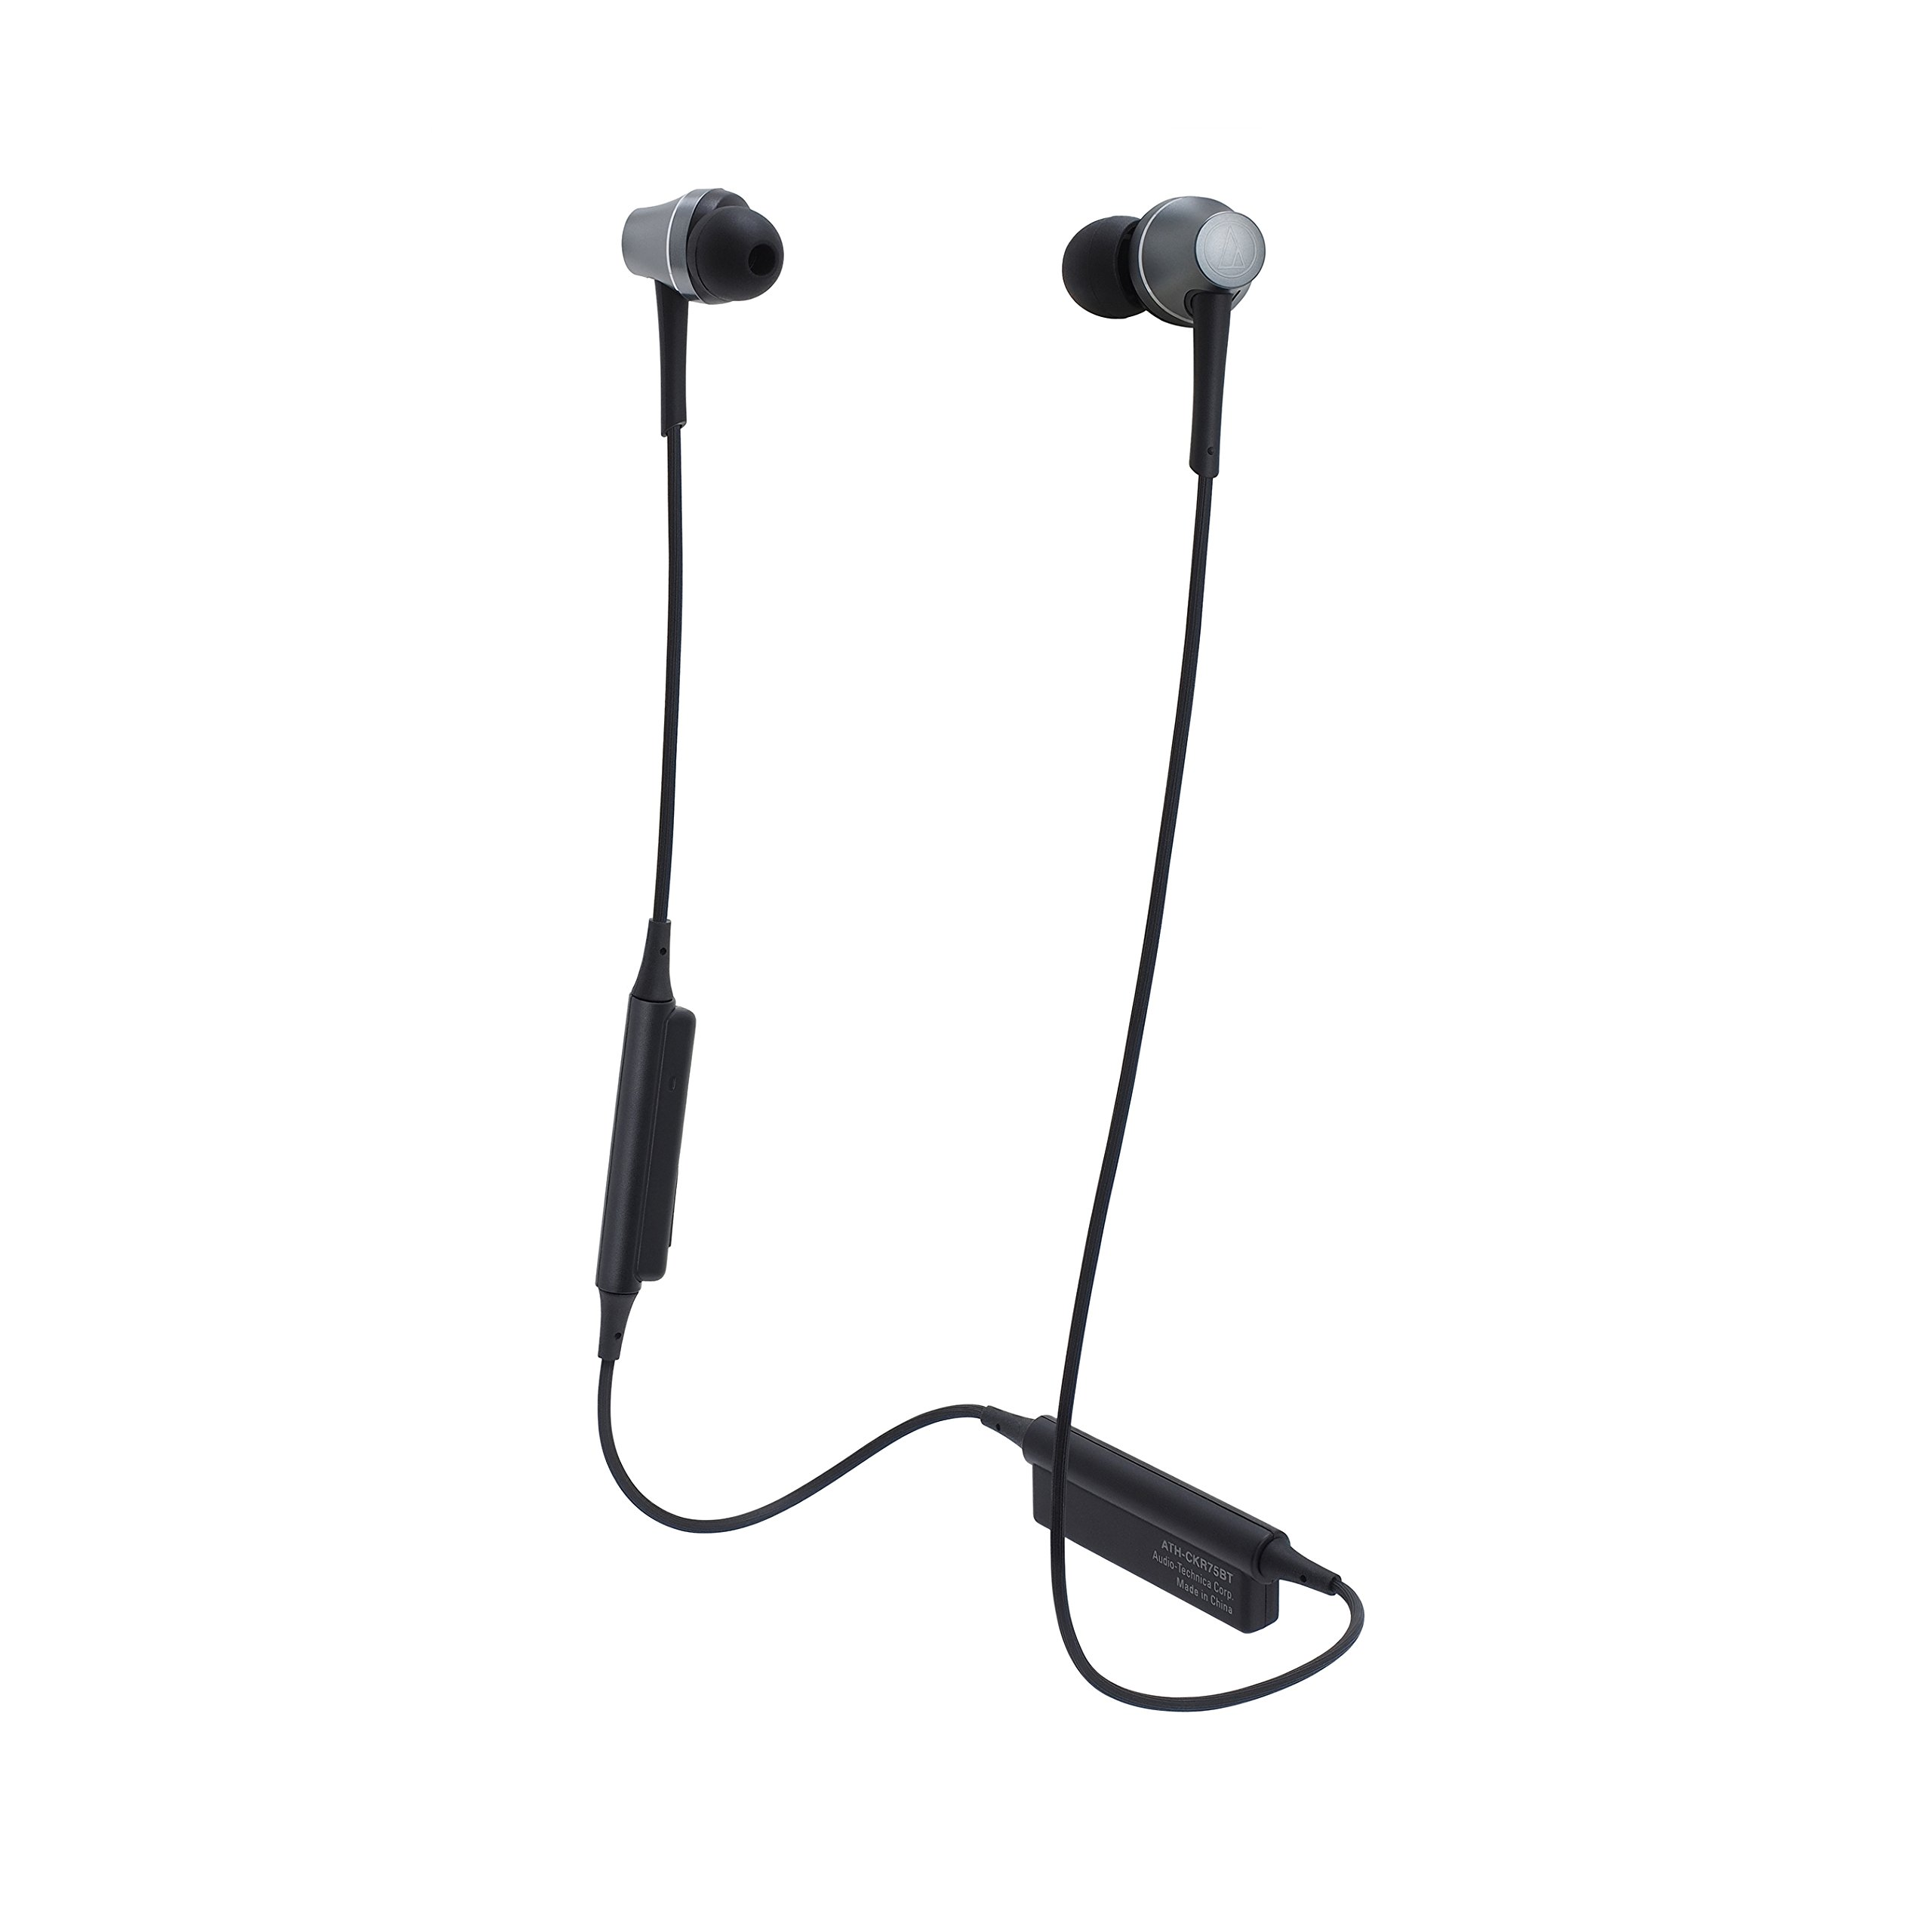 Audio-Technica ATH-CKR75BT Sound Reality Bluetooth Wireless In-Ear Headphones, Gun Metal